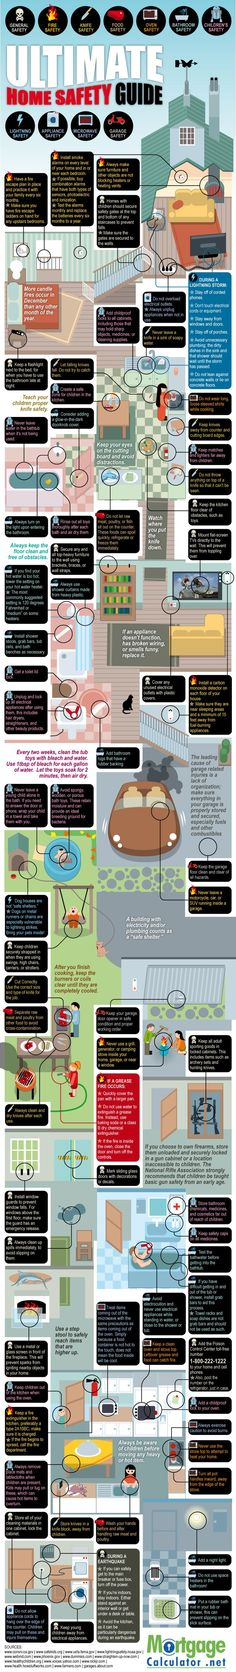 Ultimate Home Safety Guide [Infographic] Home Safety Tips, Home Security Tips, Safety And Security, Family Safety, Child Safety, Home Protection, Personal Safety, Home Safes, Home Defense